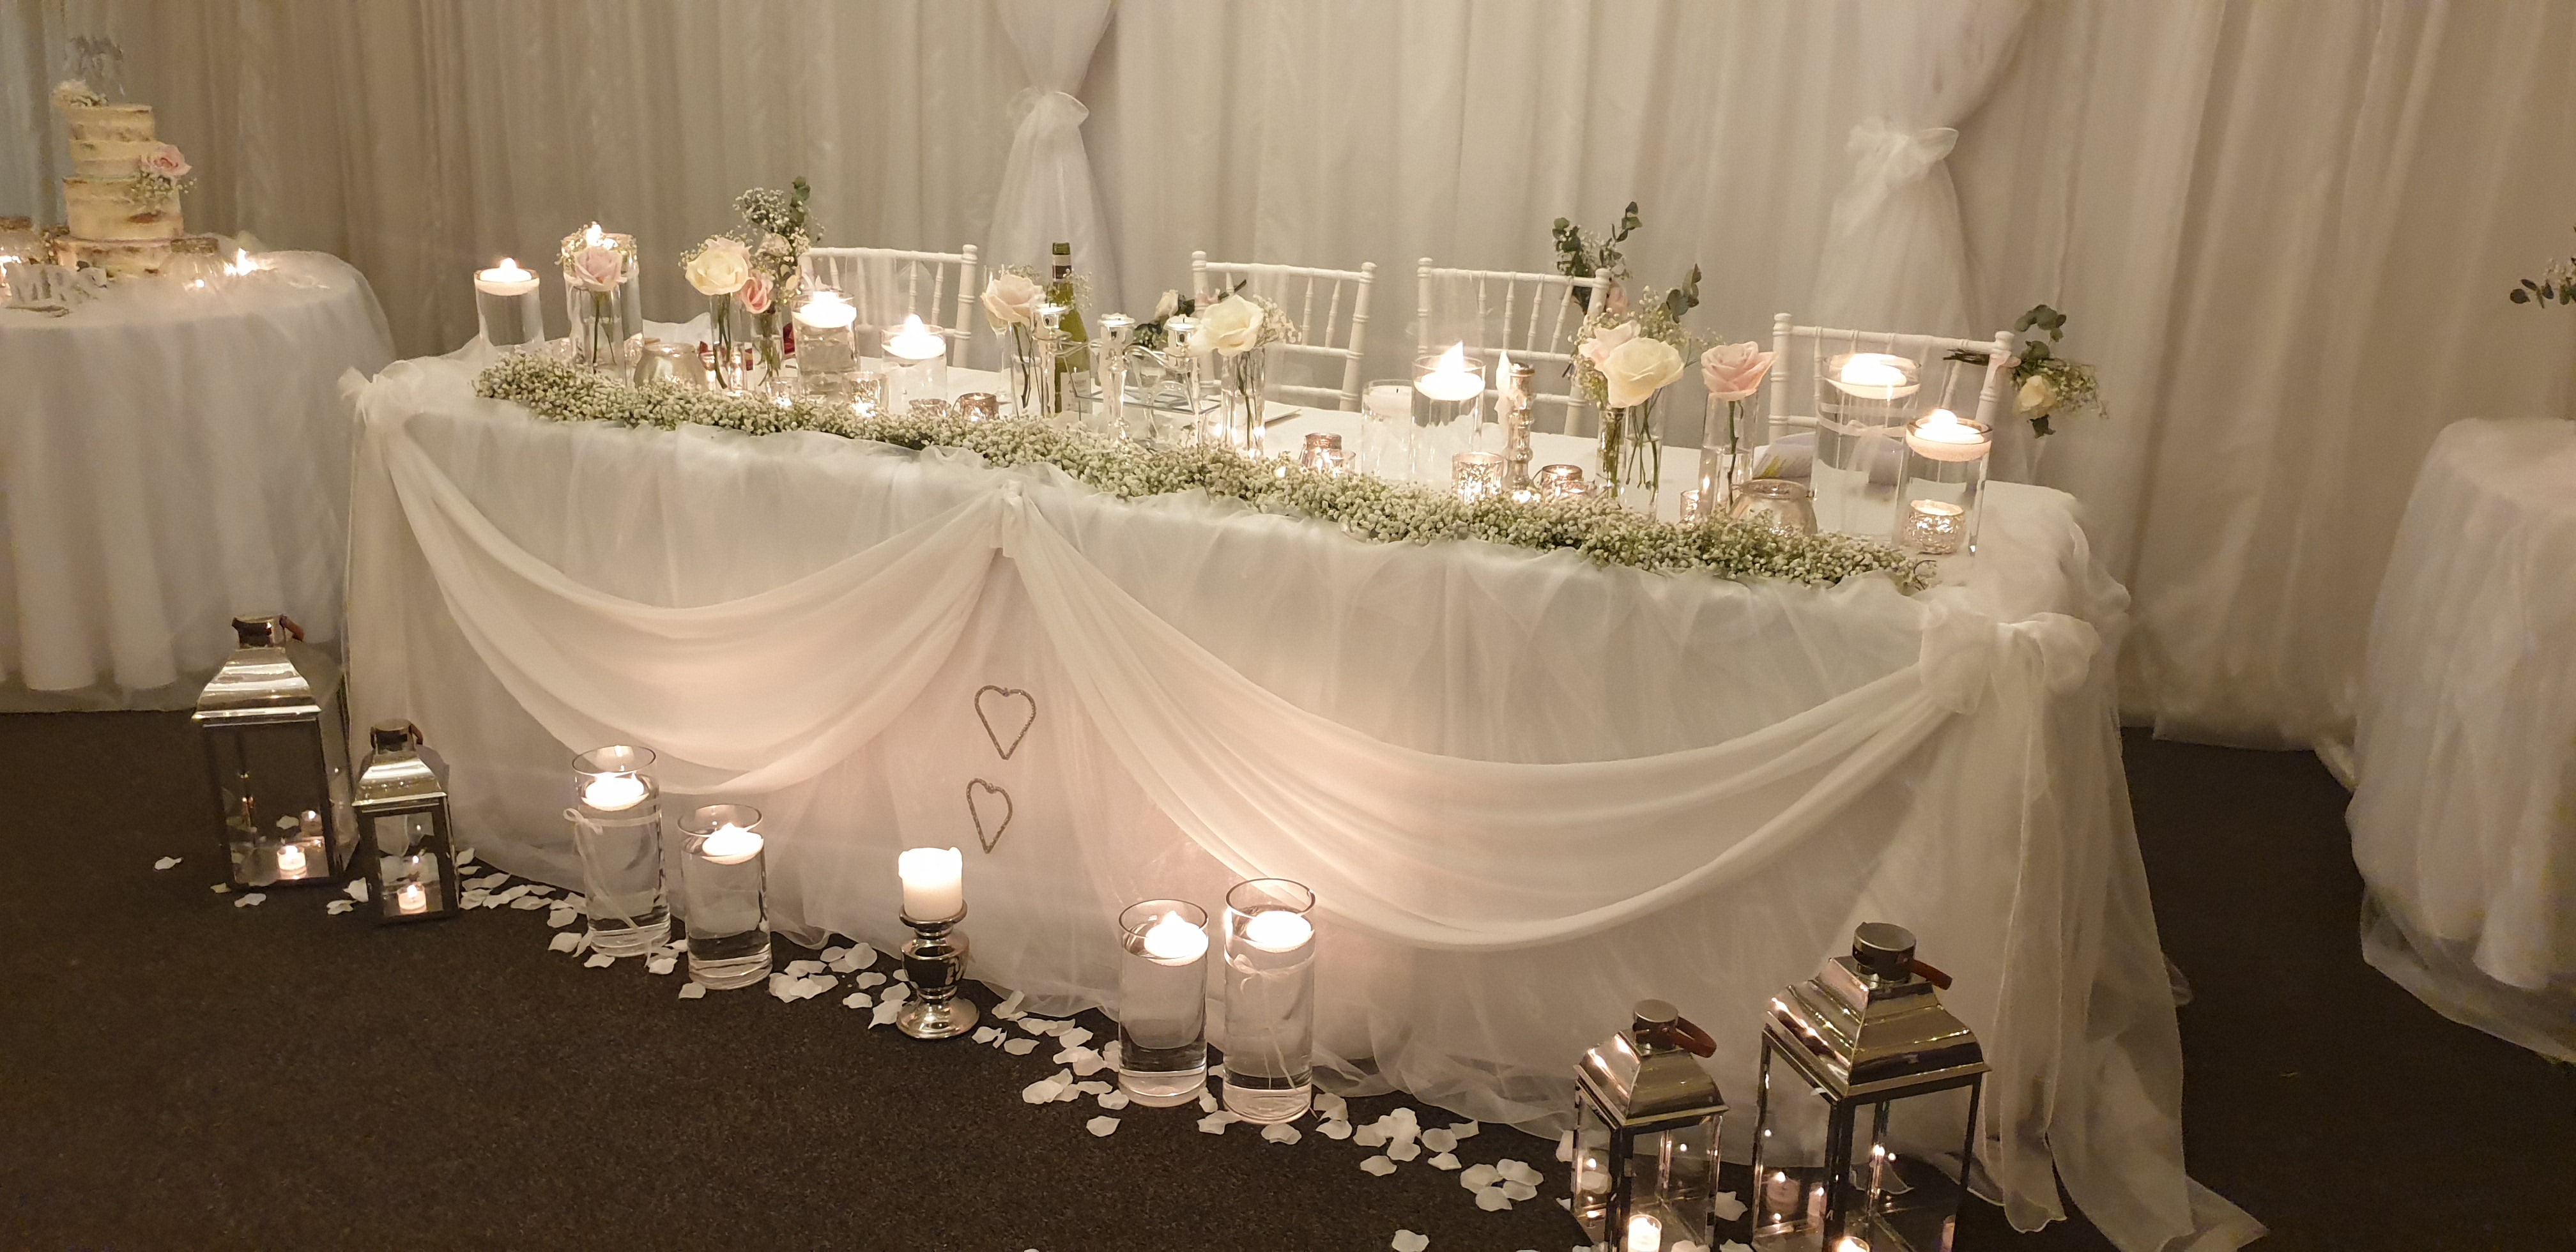 Fresh gyp garlands, fresh flower vases and lots of candles